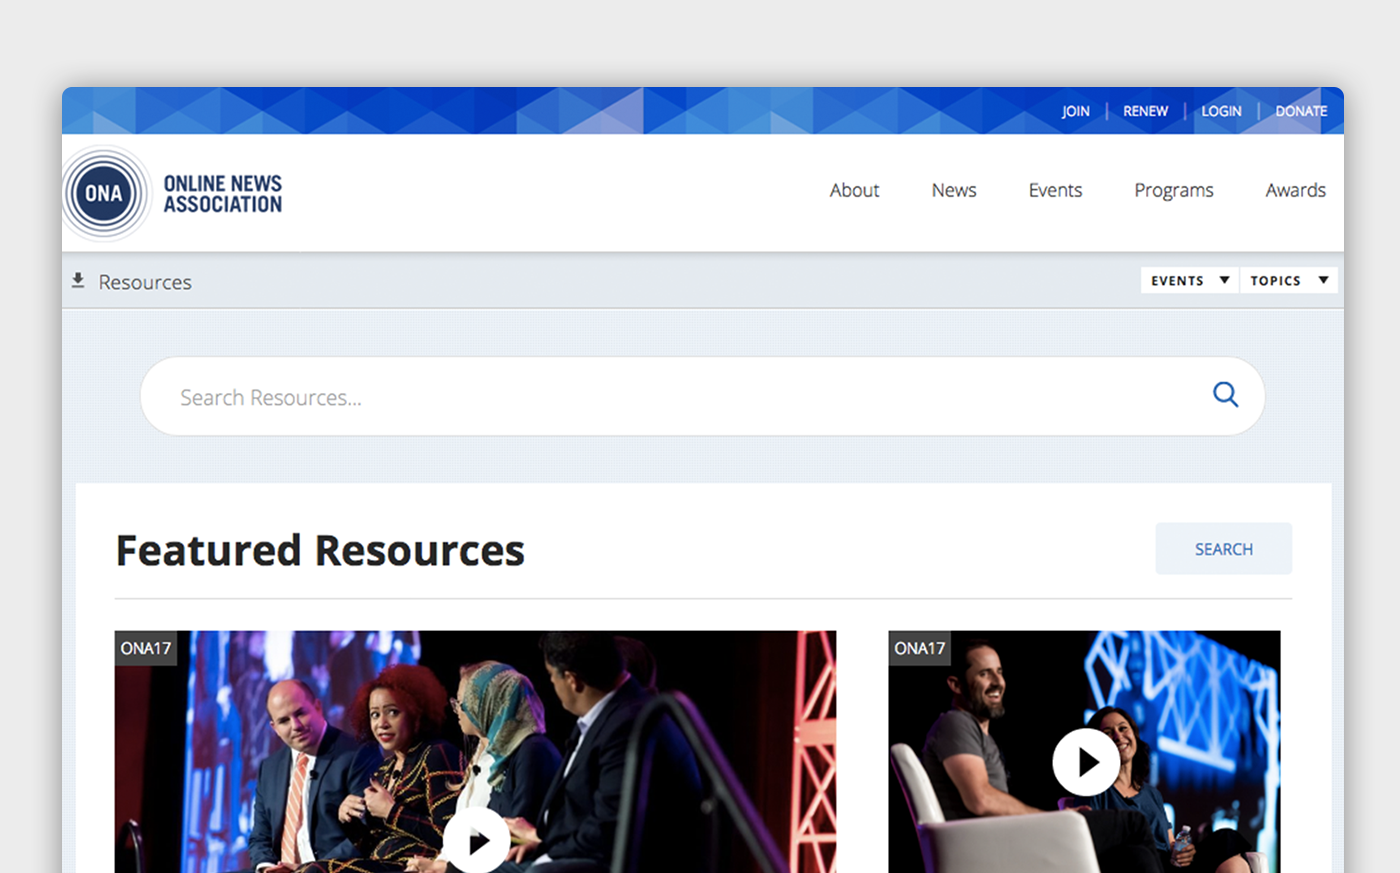 A screenshot of the Featured Resources portal page on the ONA site, with a search bar and navigation links